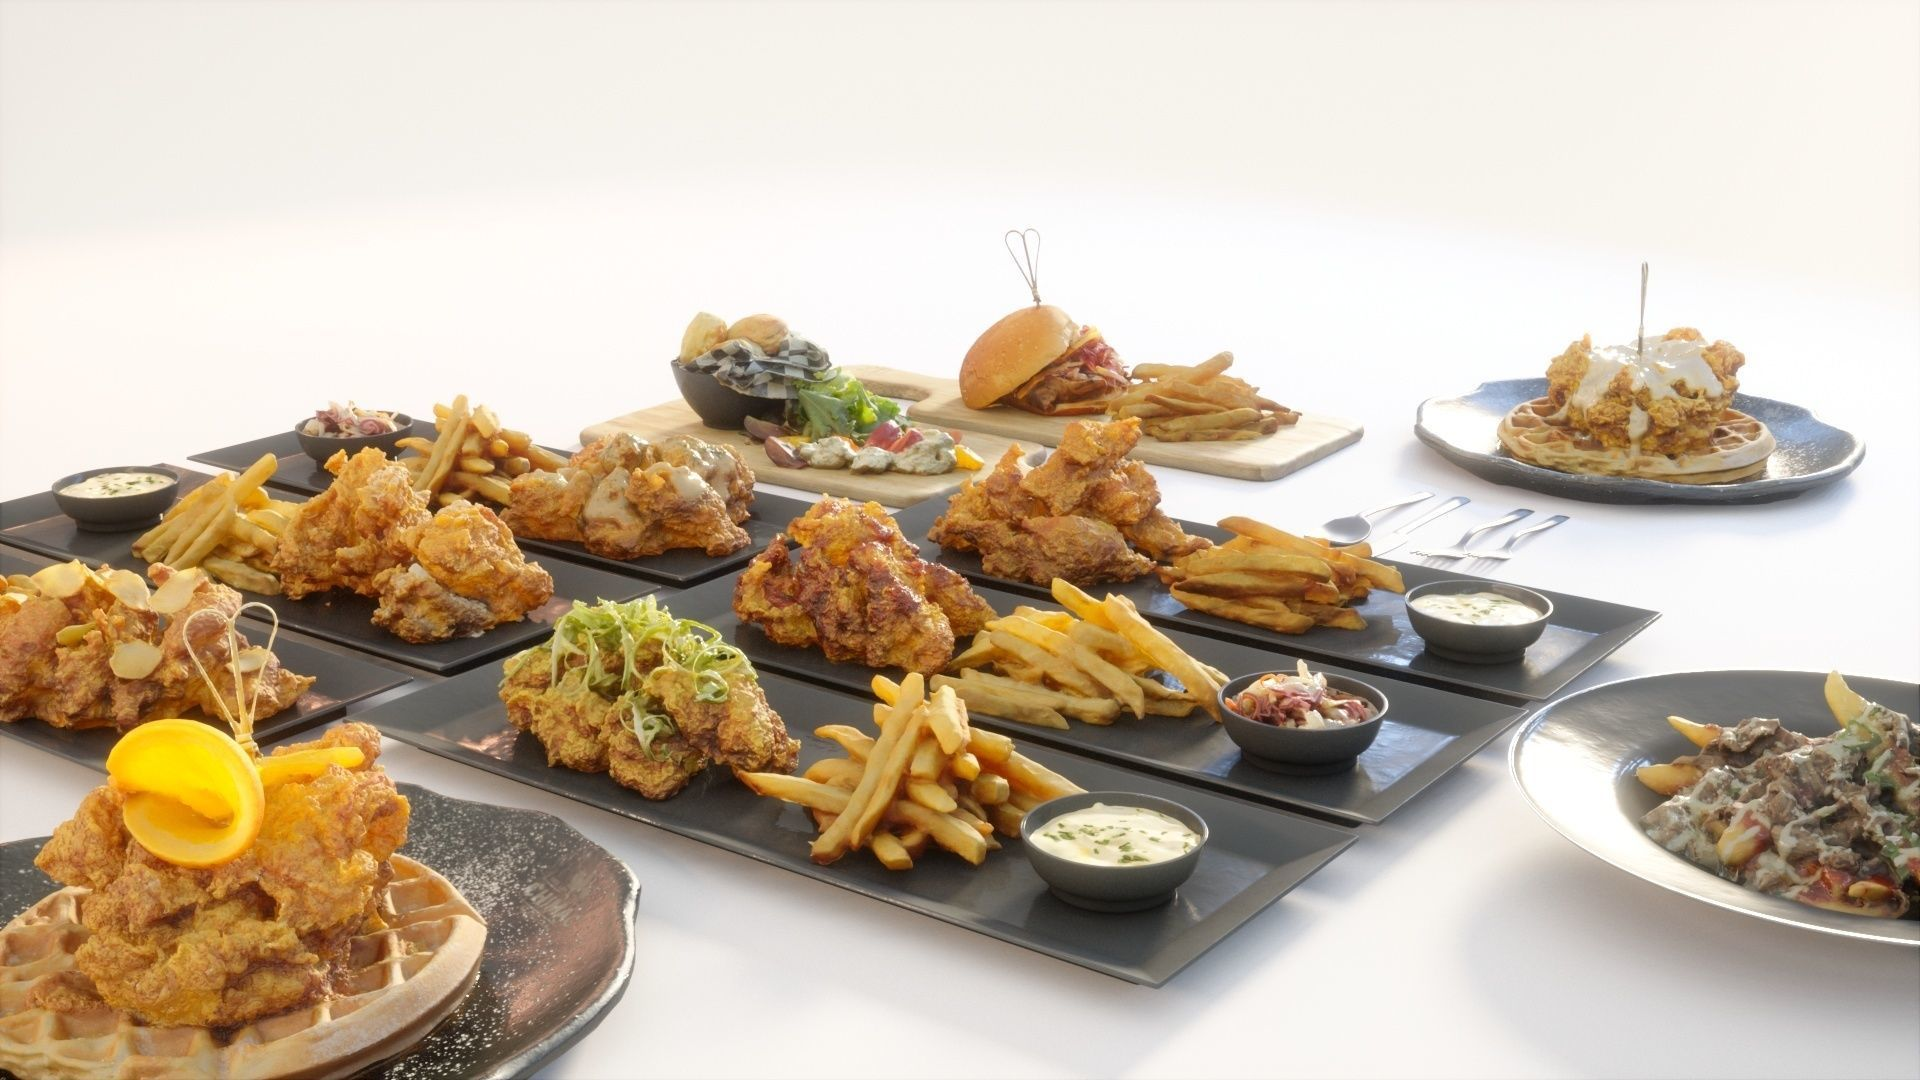 Fried chicken meal collection